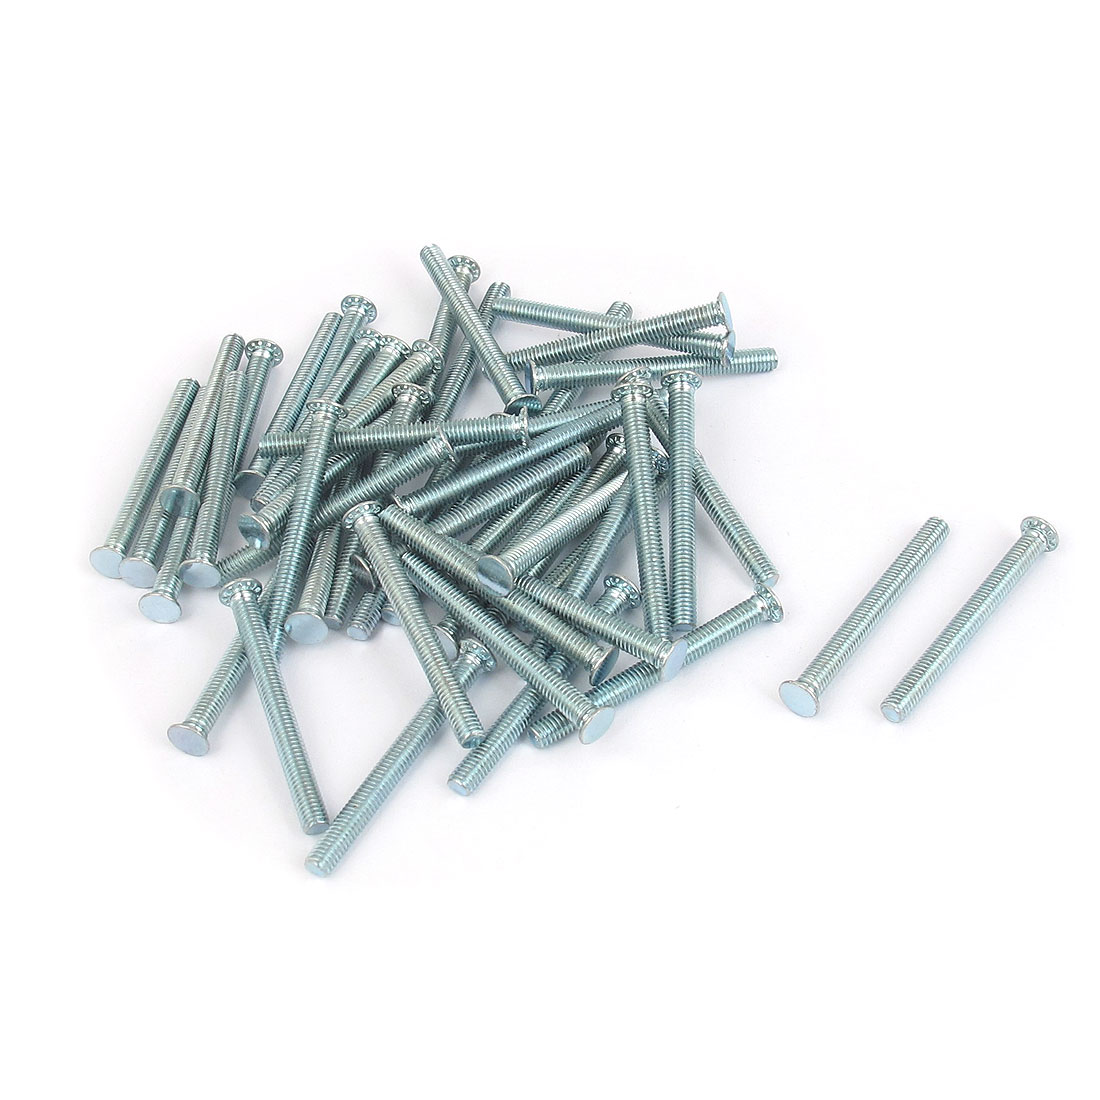 M3x30mm Zinc Plated Flush Head Self Clinching Threaded Studs Fastener 50pcs